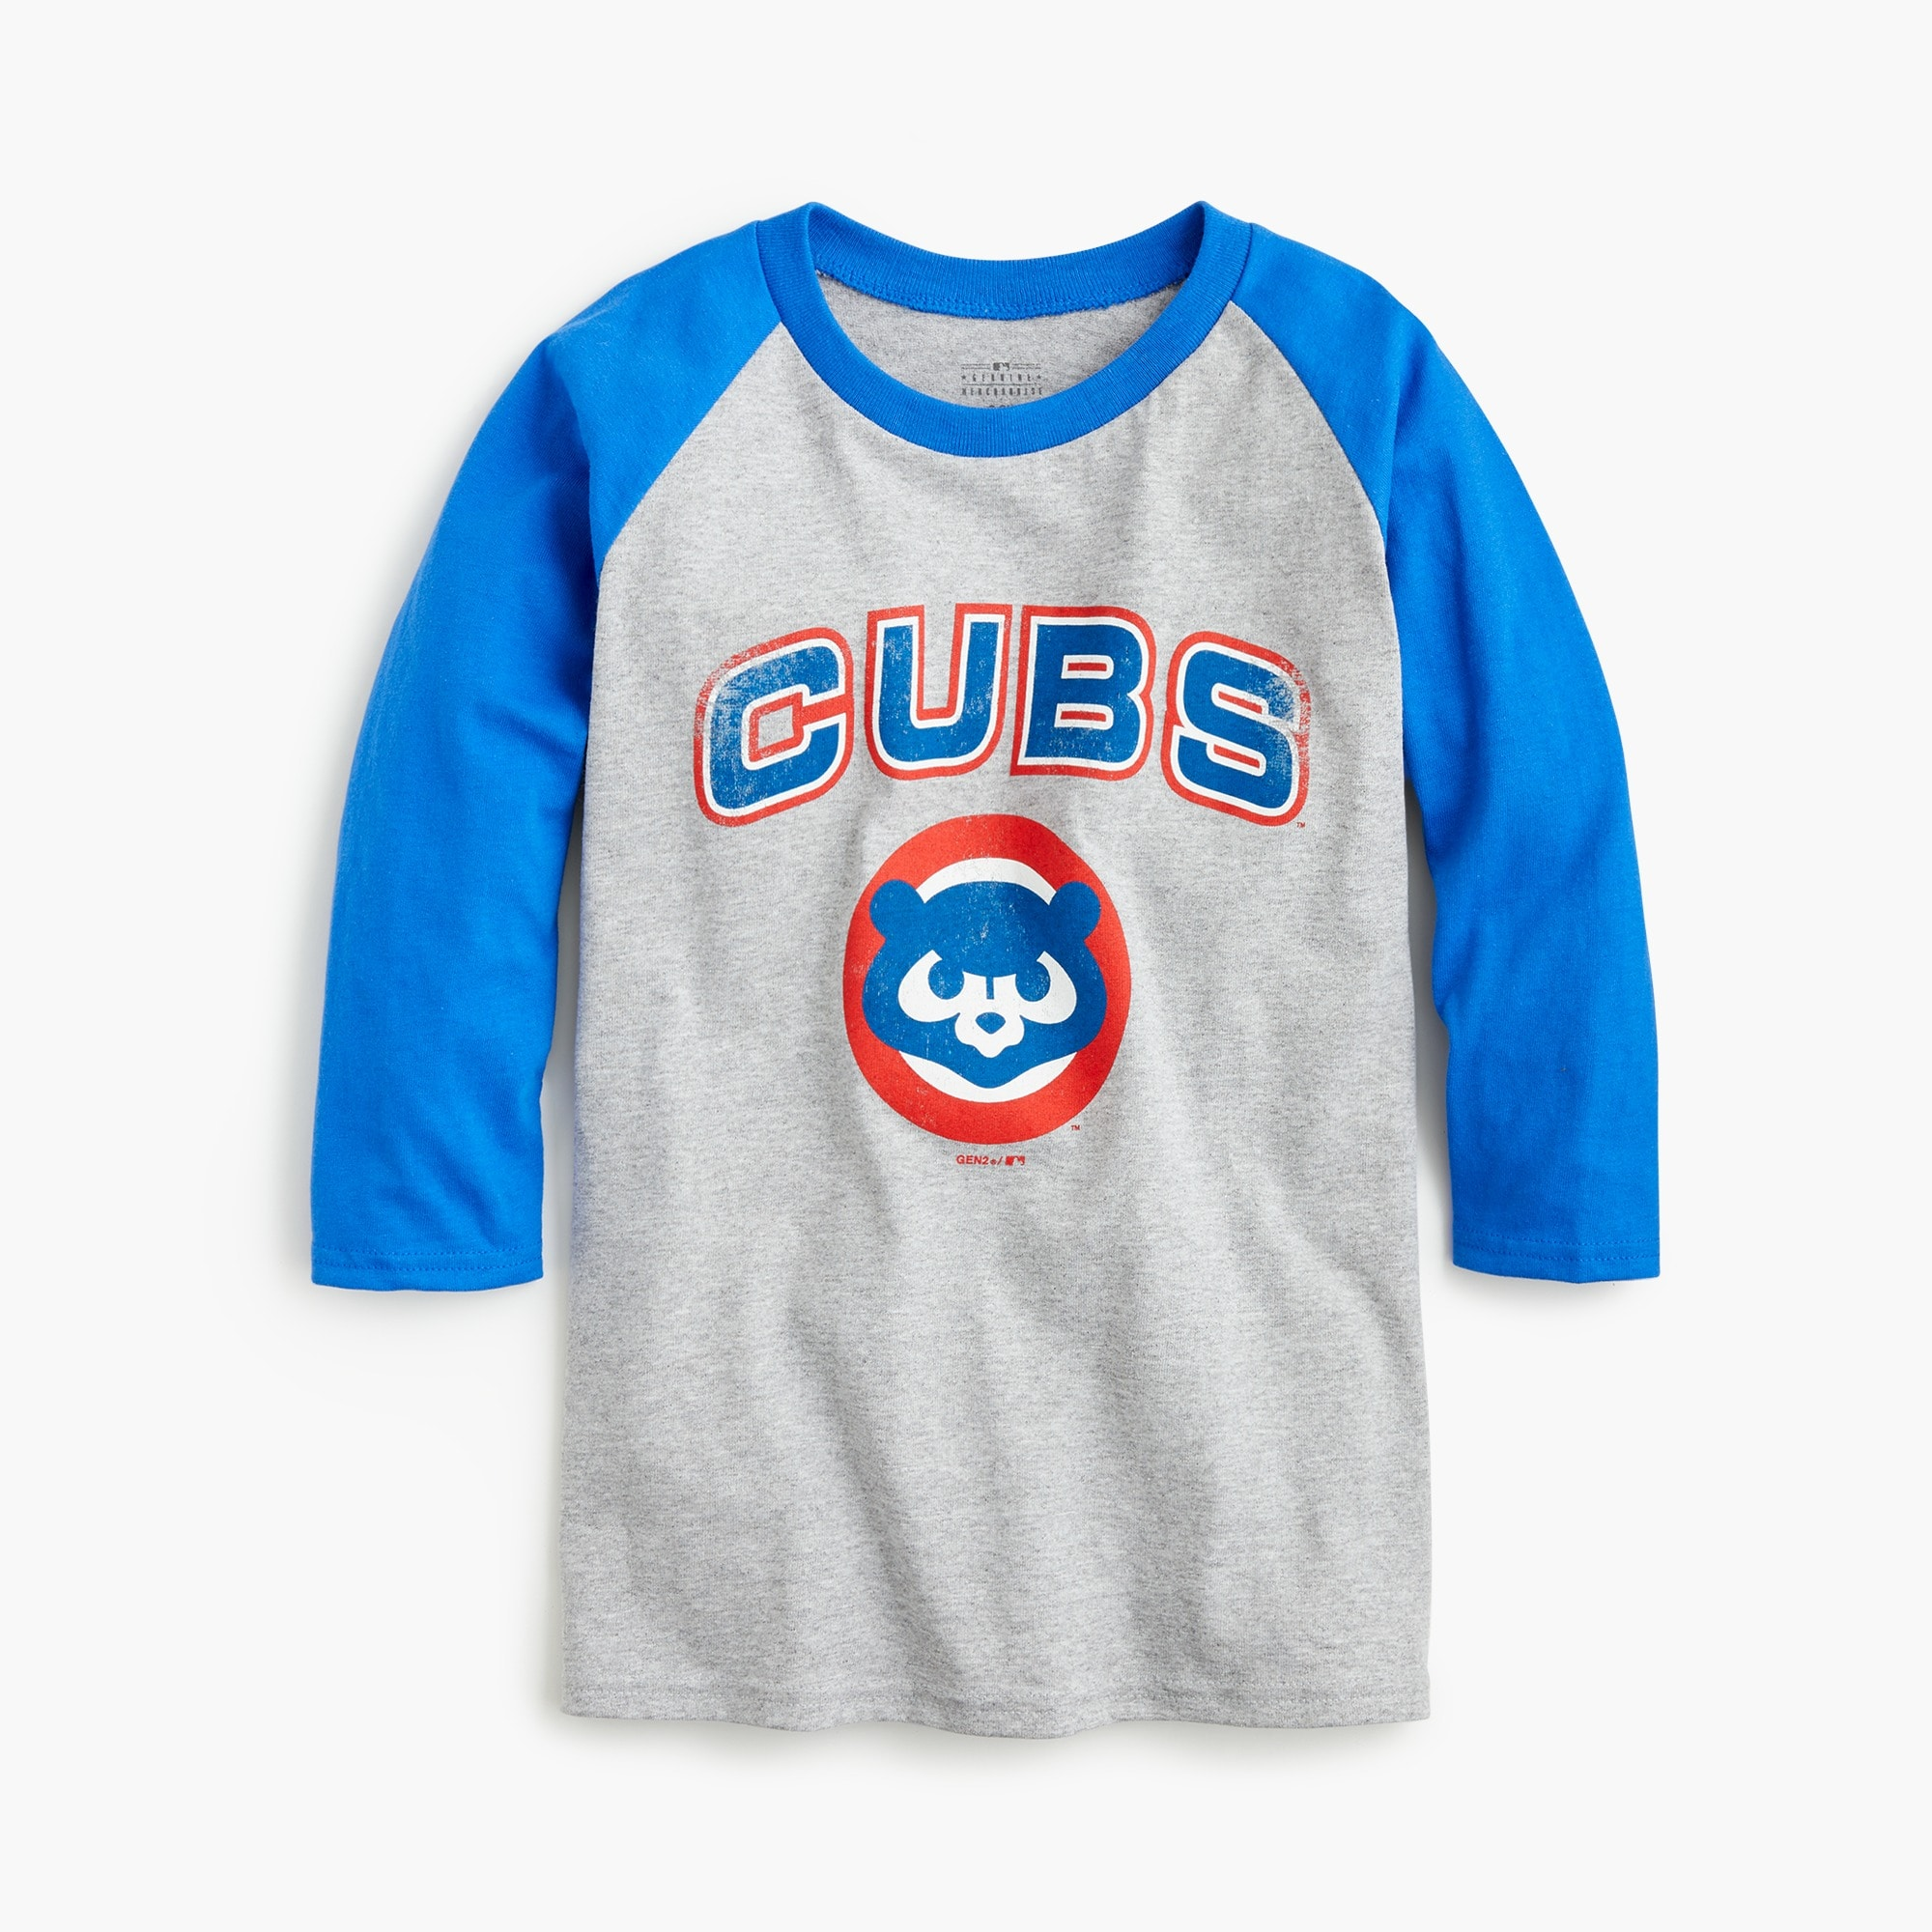 Kids' Chicago Cubs baseball T-shirt boy new arrivals c